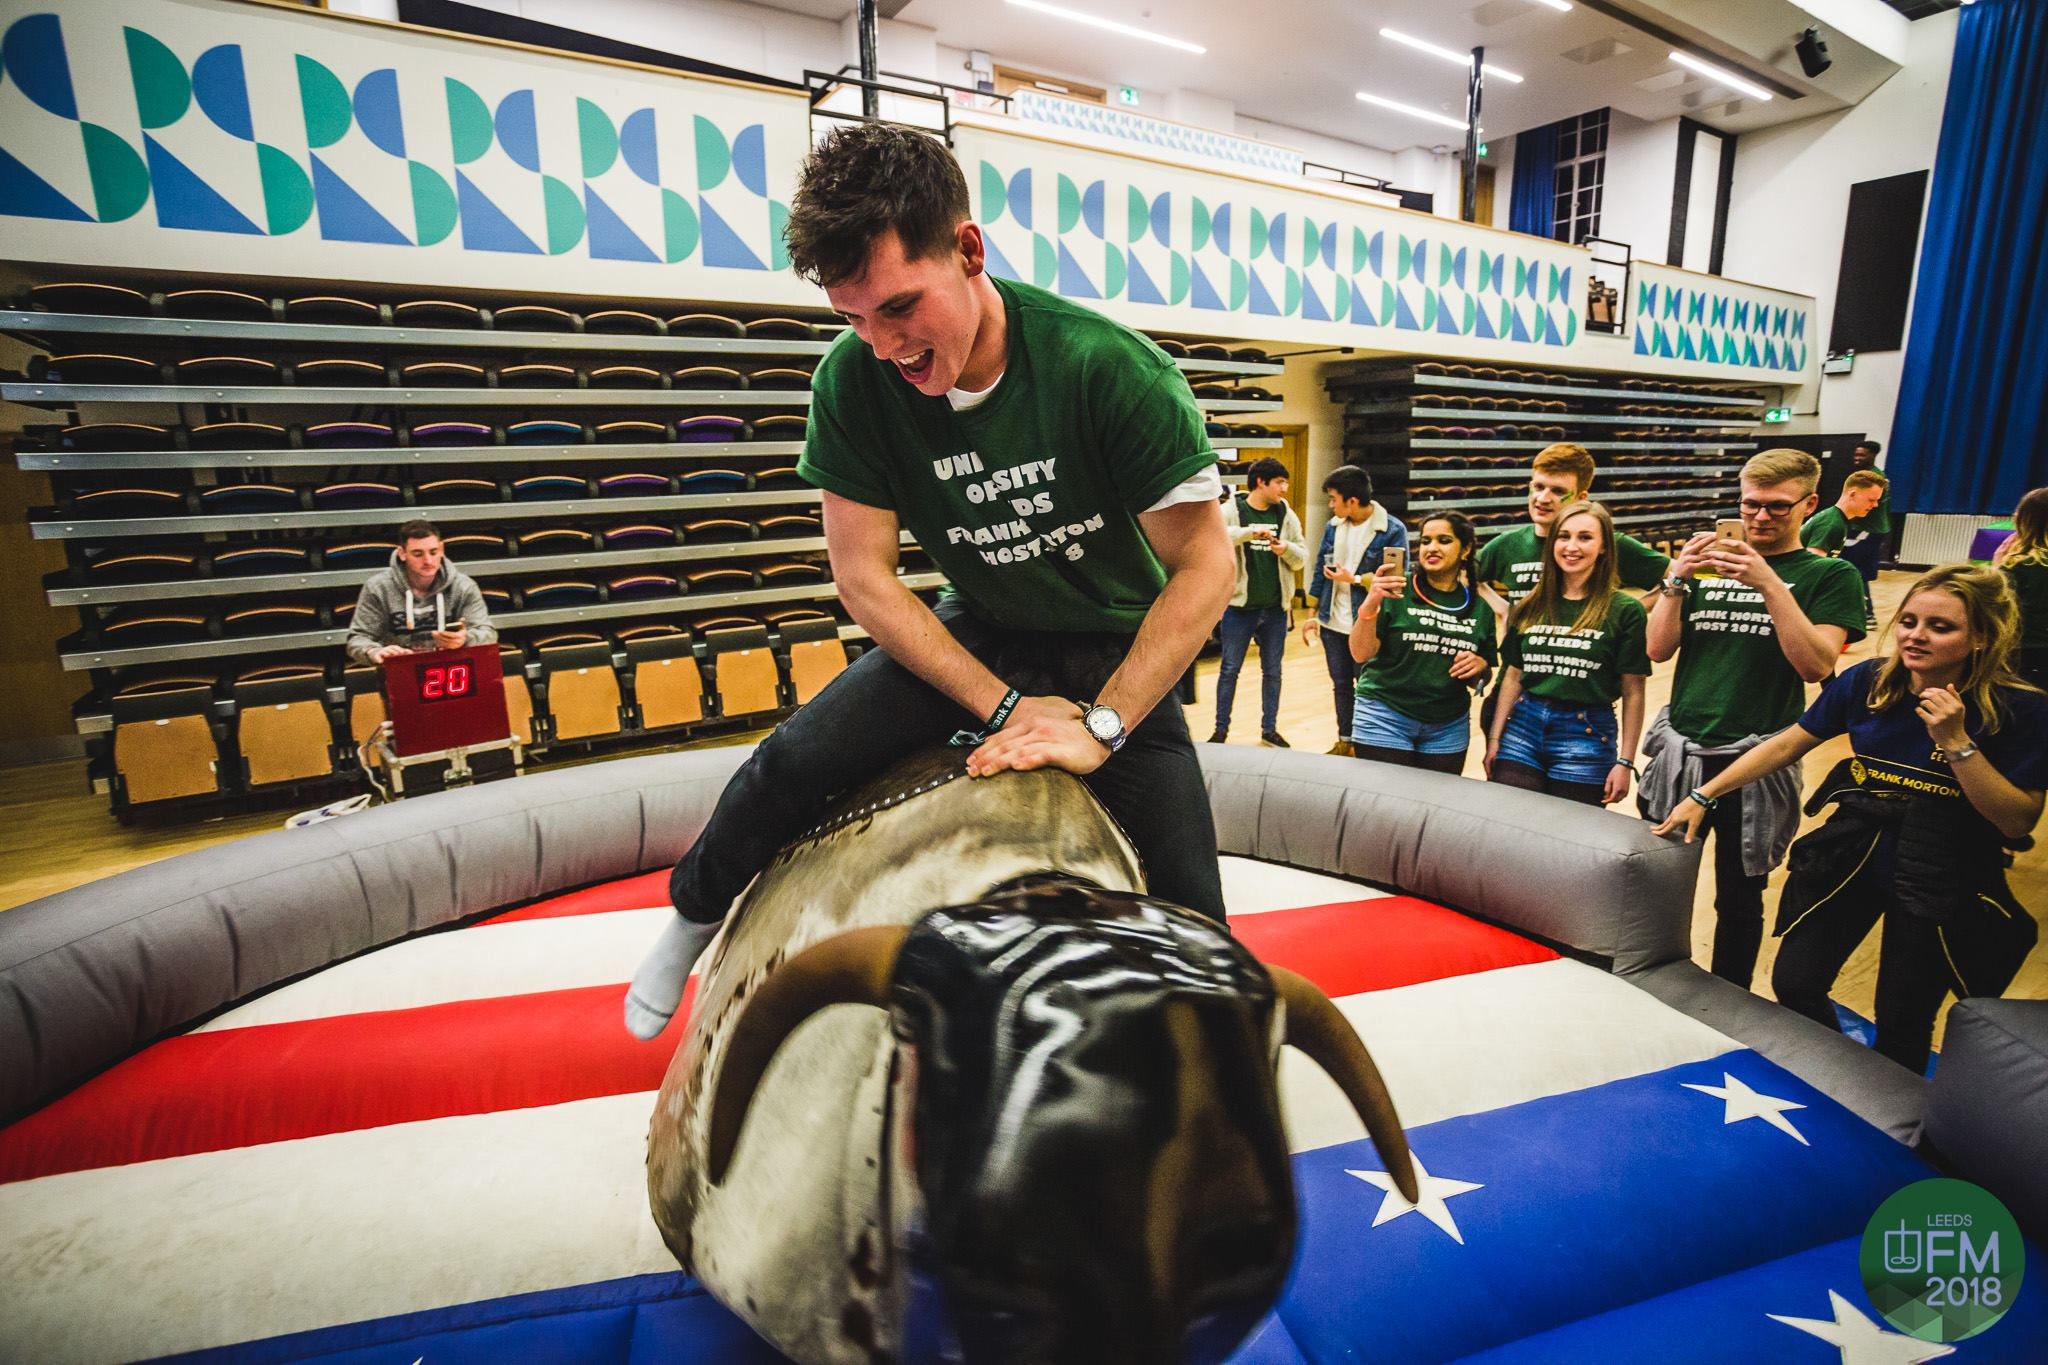 Student on mechanical bull at ChemSoc Frank morton annual sports day